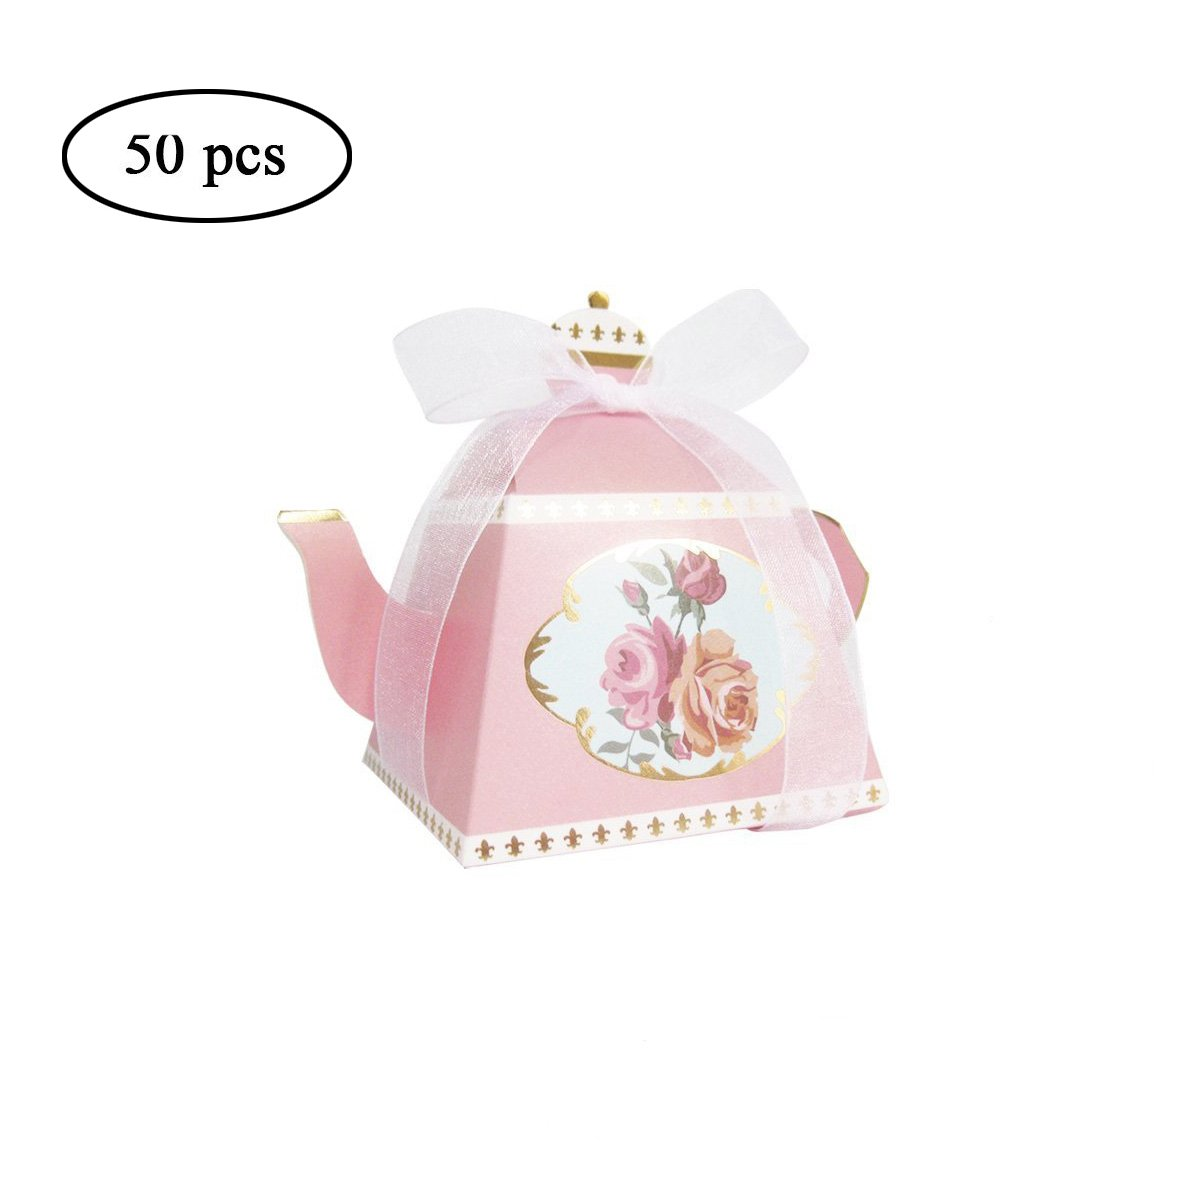 Amazon.com: AISHOPE 50PCS Mini Teapot Wedding Favor Boxes ...